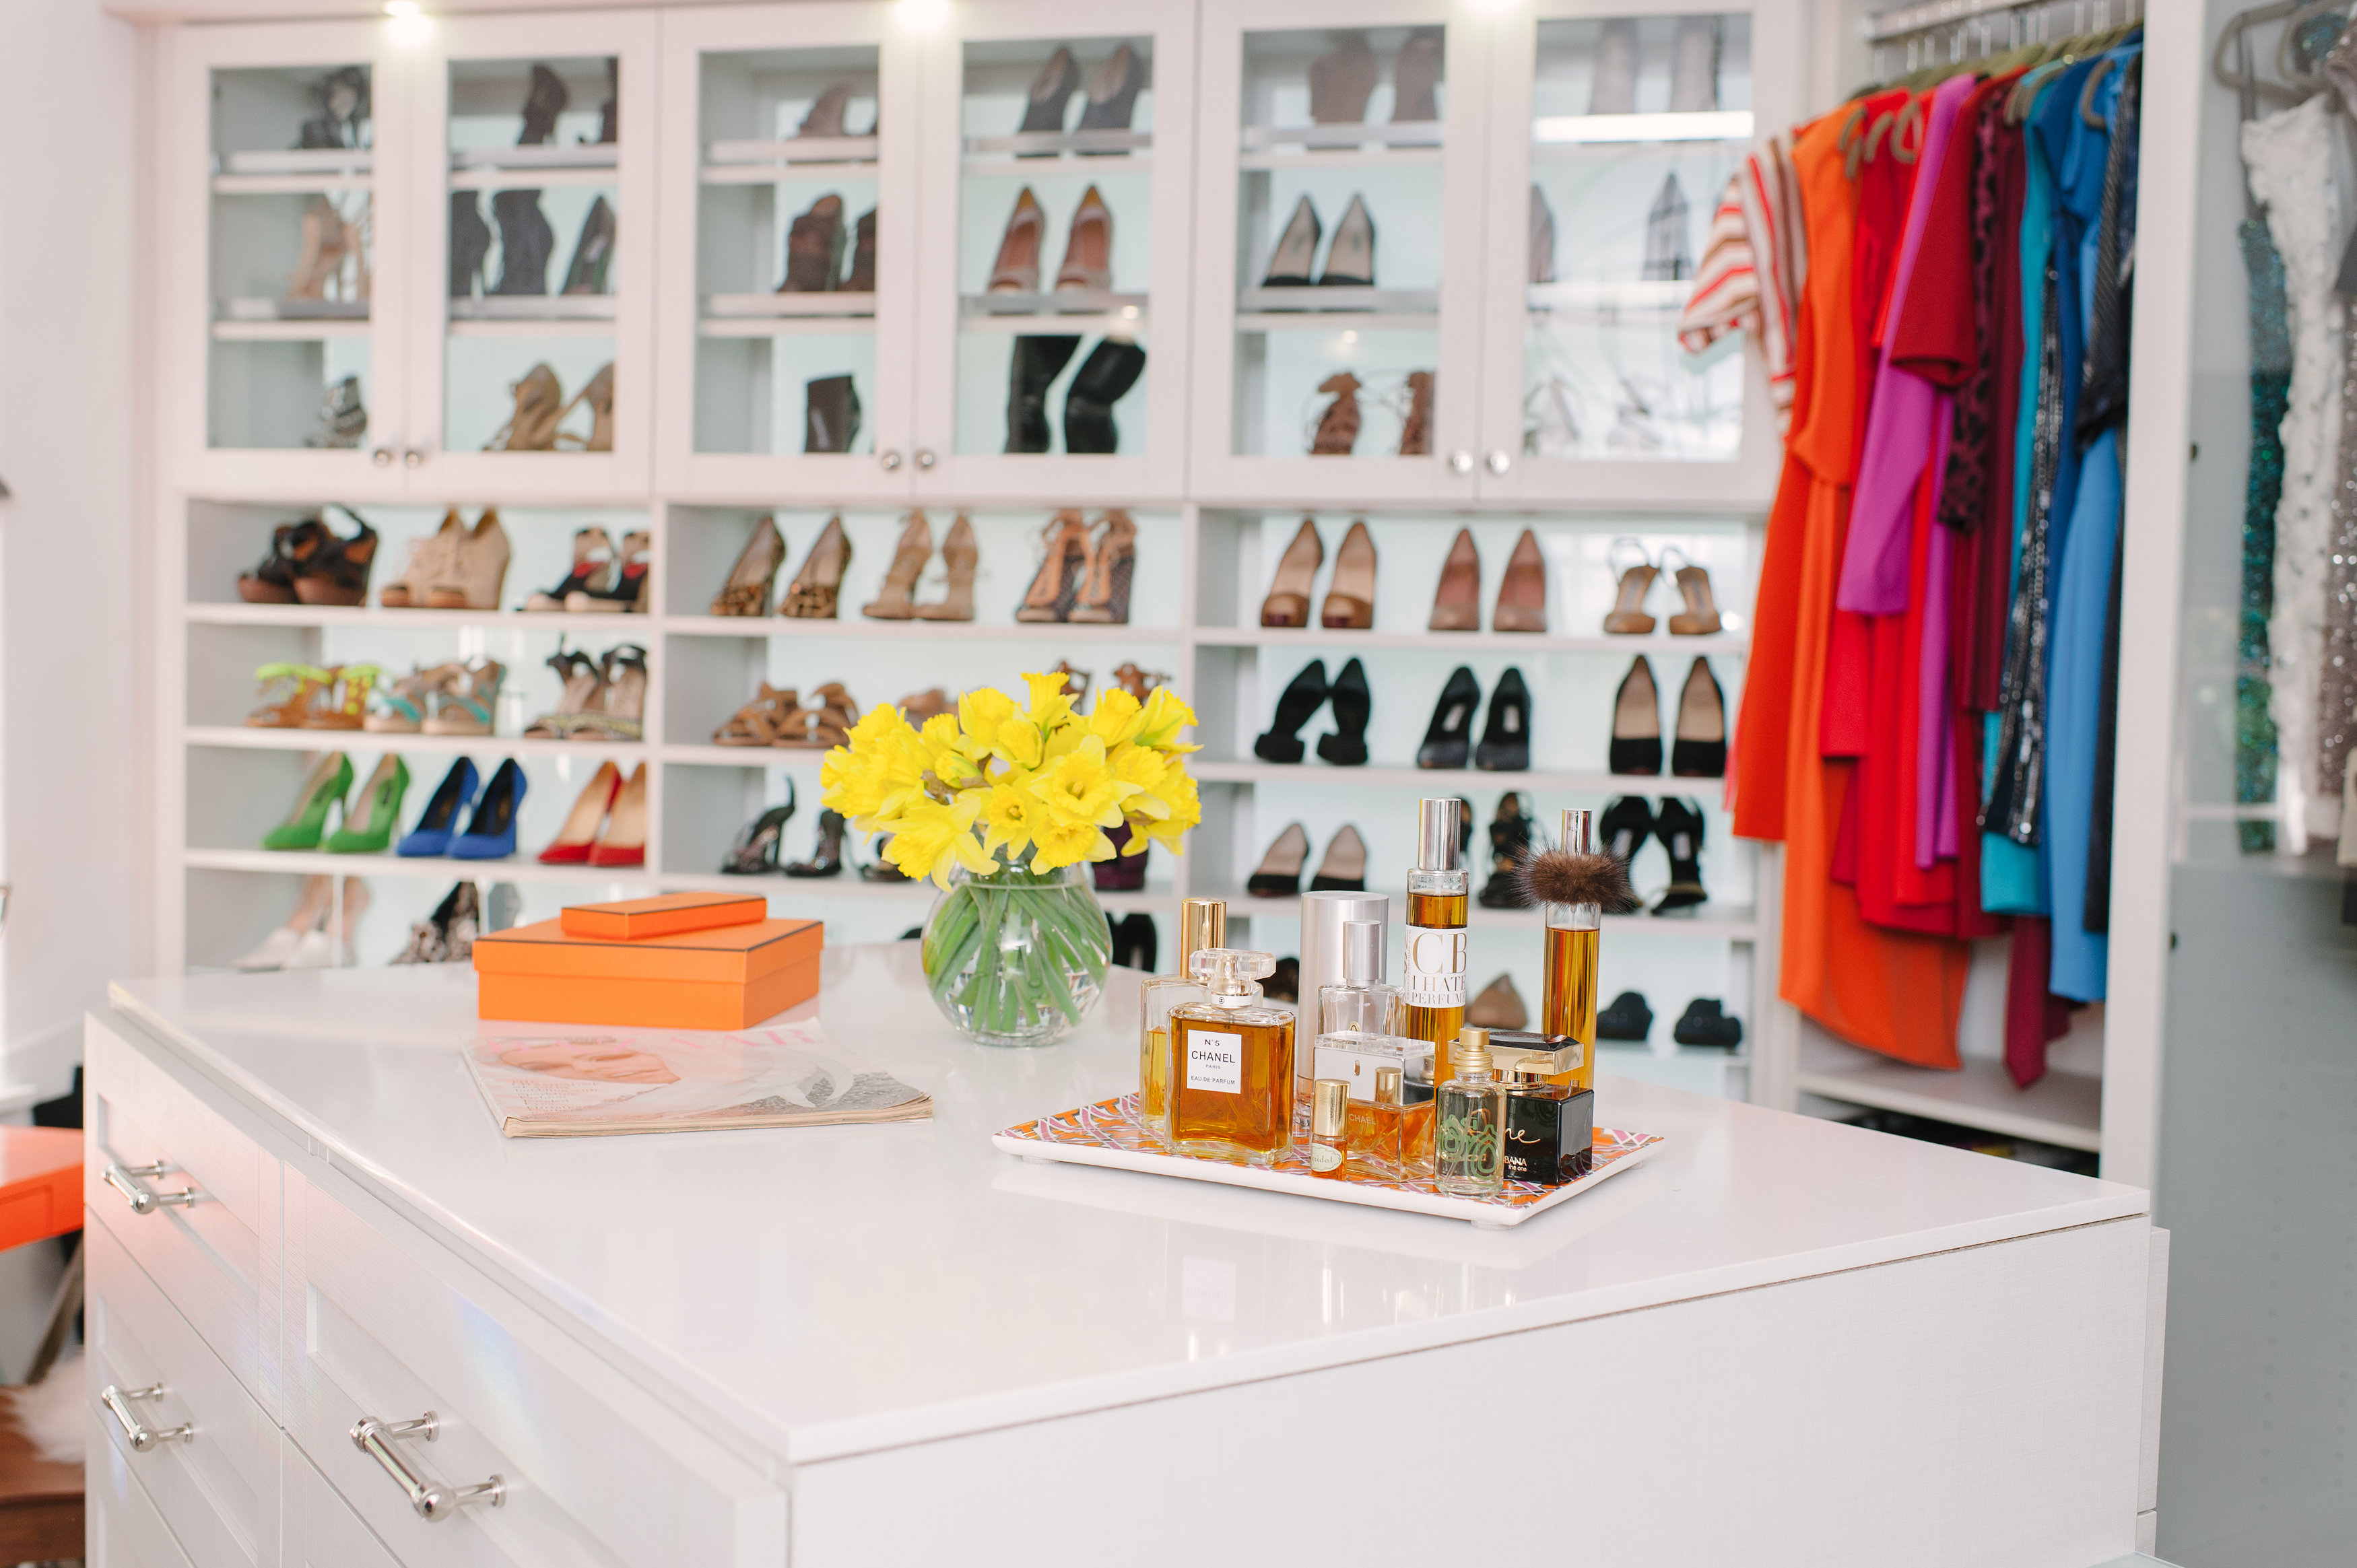 """Thiessen's former office was transformed into a spacious closet and dressing room. """"It's the one room in the house where we wanted to reflect that Tiffani is a glamorous actress,"""" says Lewis. Cabinets and countertops are neutral in this space, by design. """"The clothing in a closet should make the color palette,"""" says Lewis."""